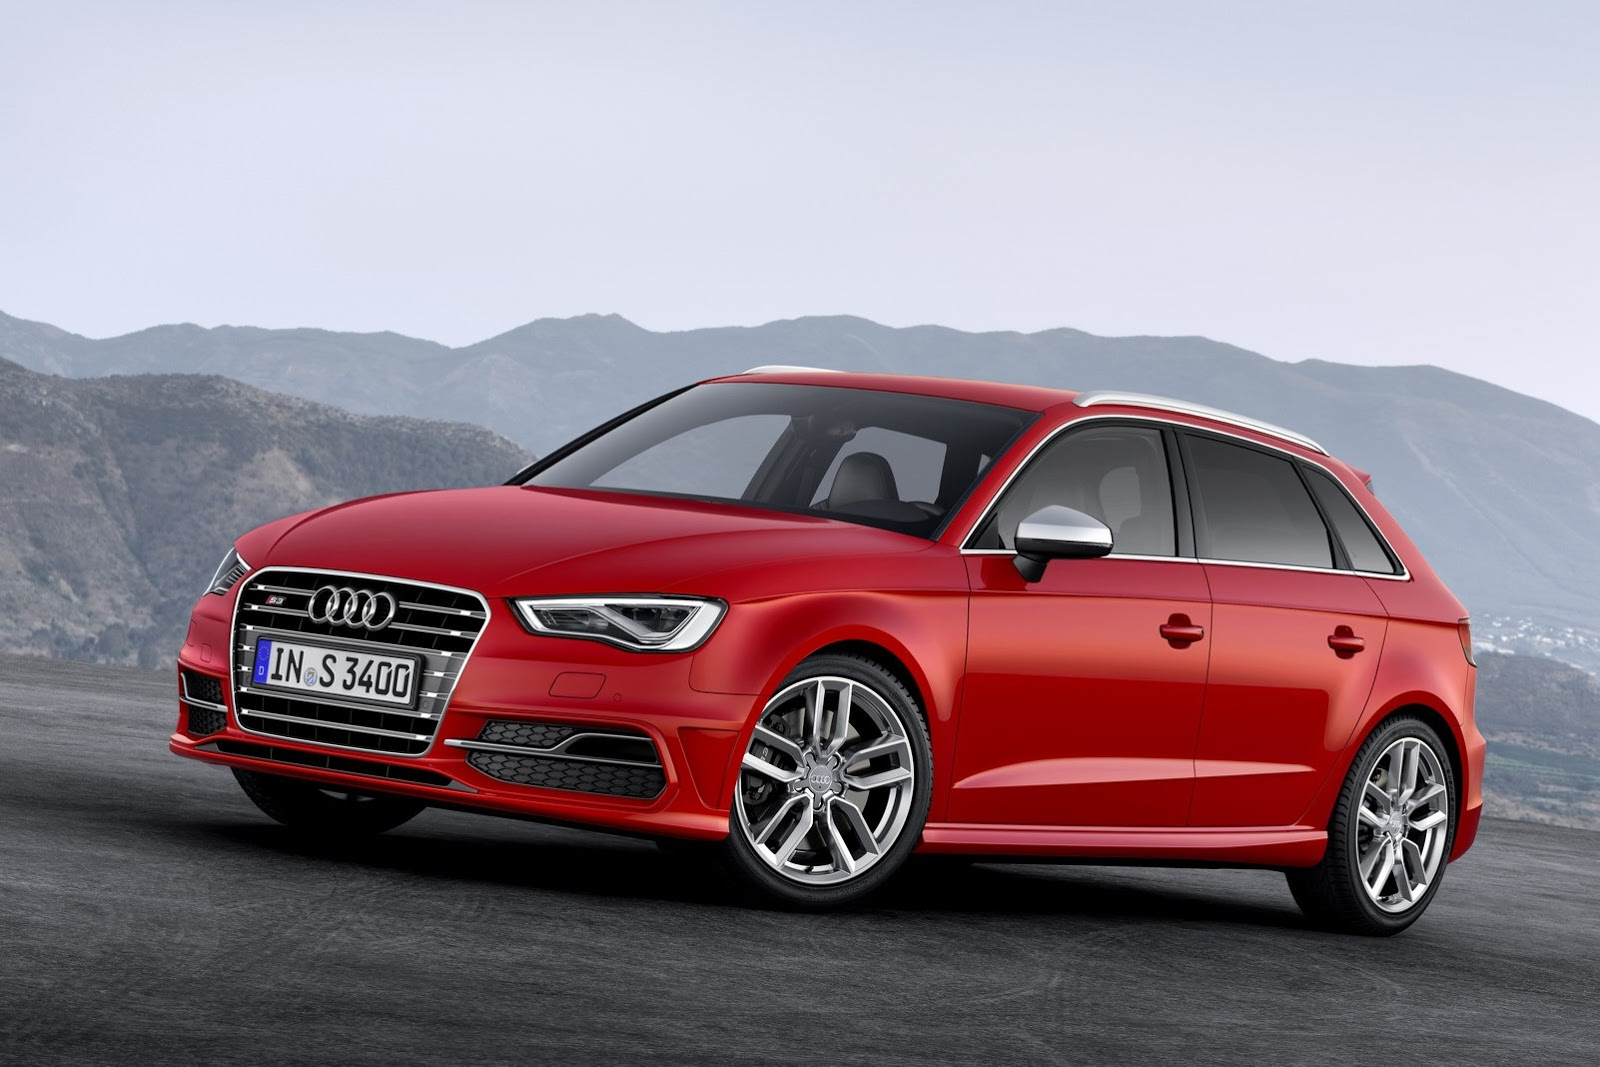 New Audi S3 Five Door Sportback Has 300 Hp Autoevolution